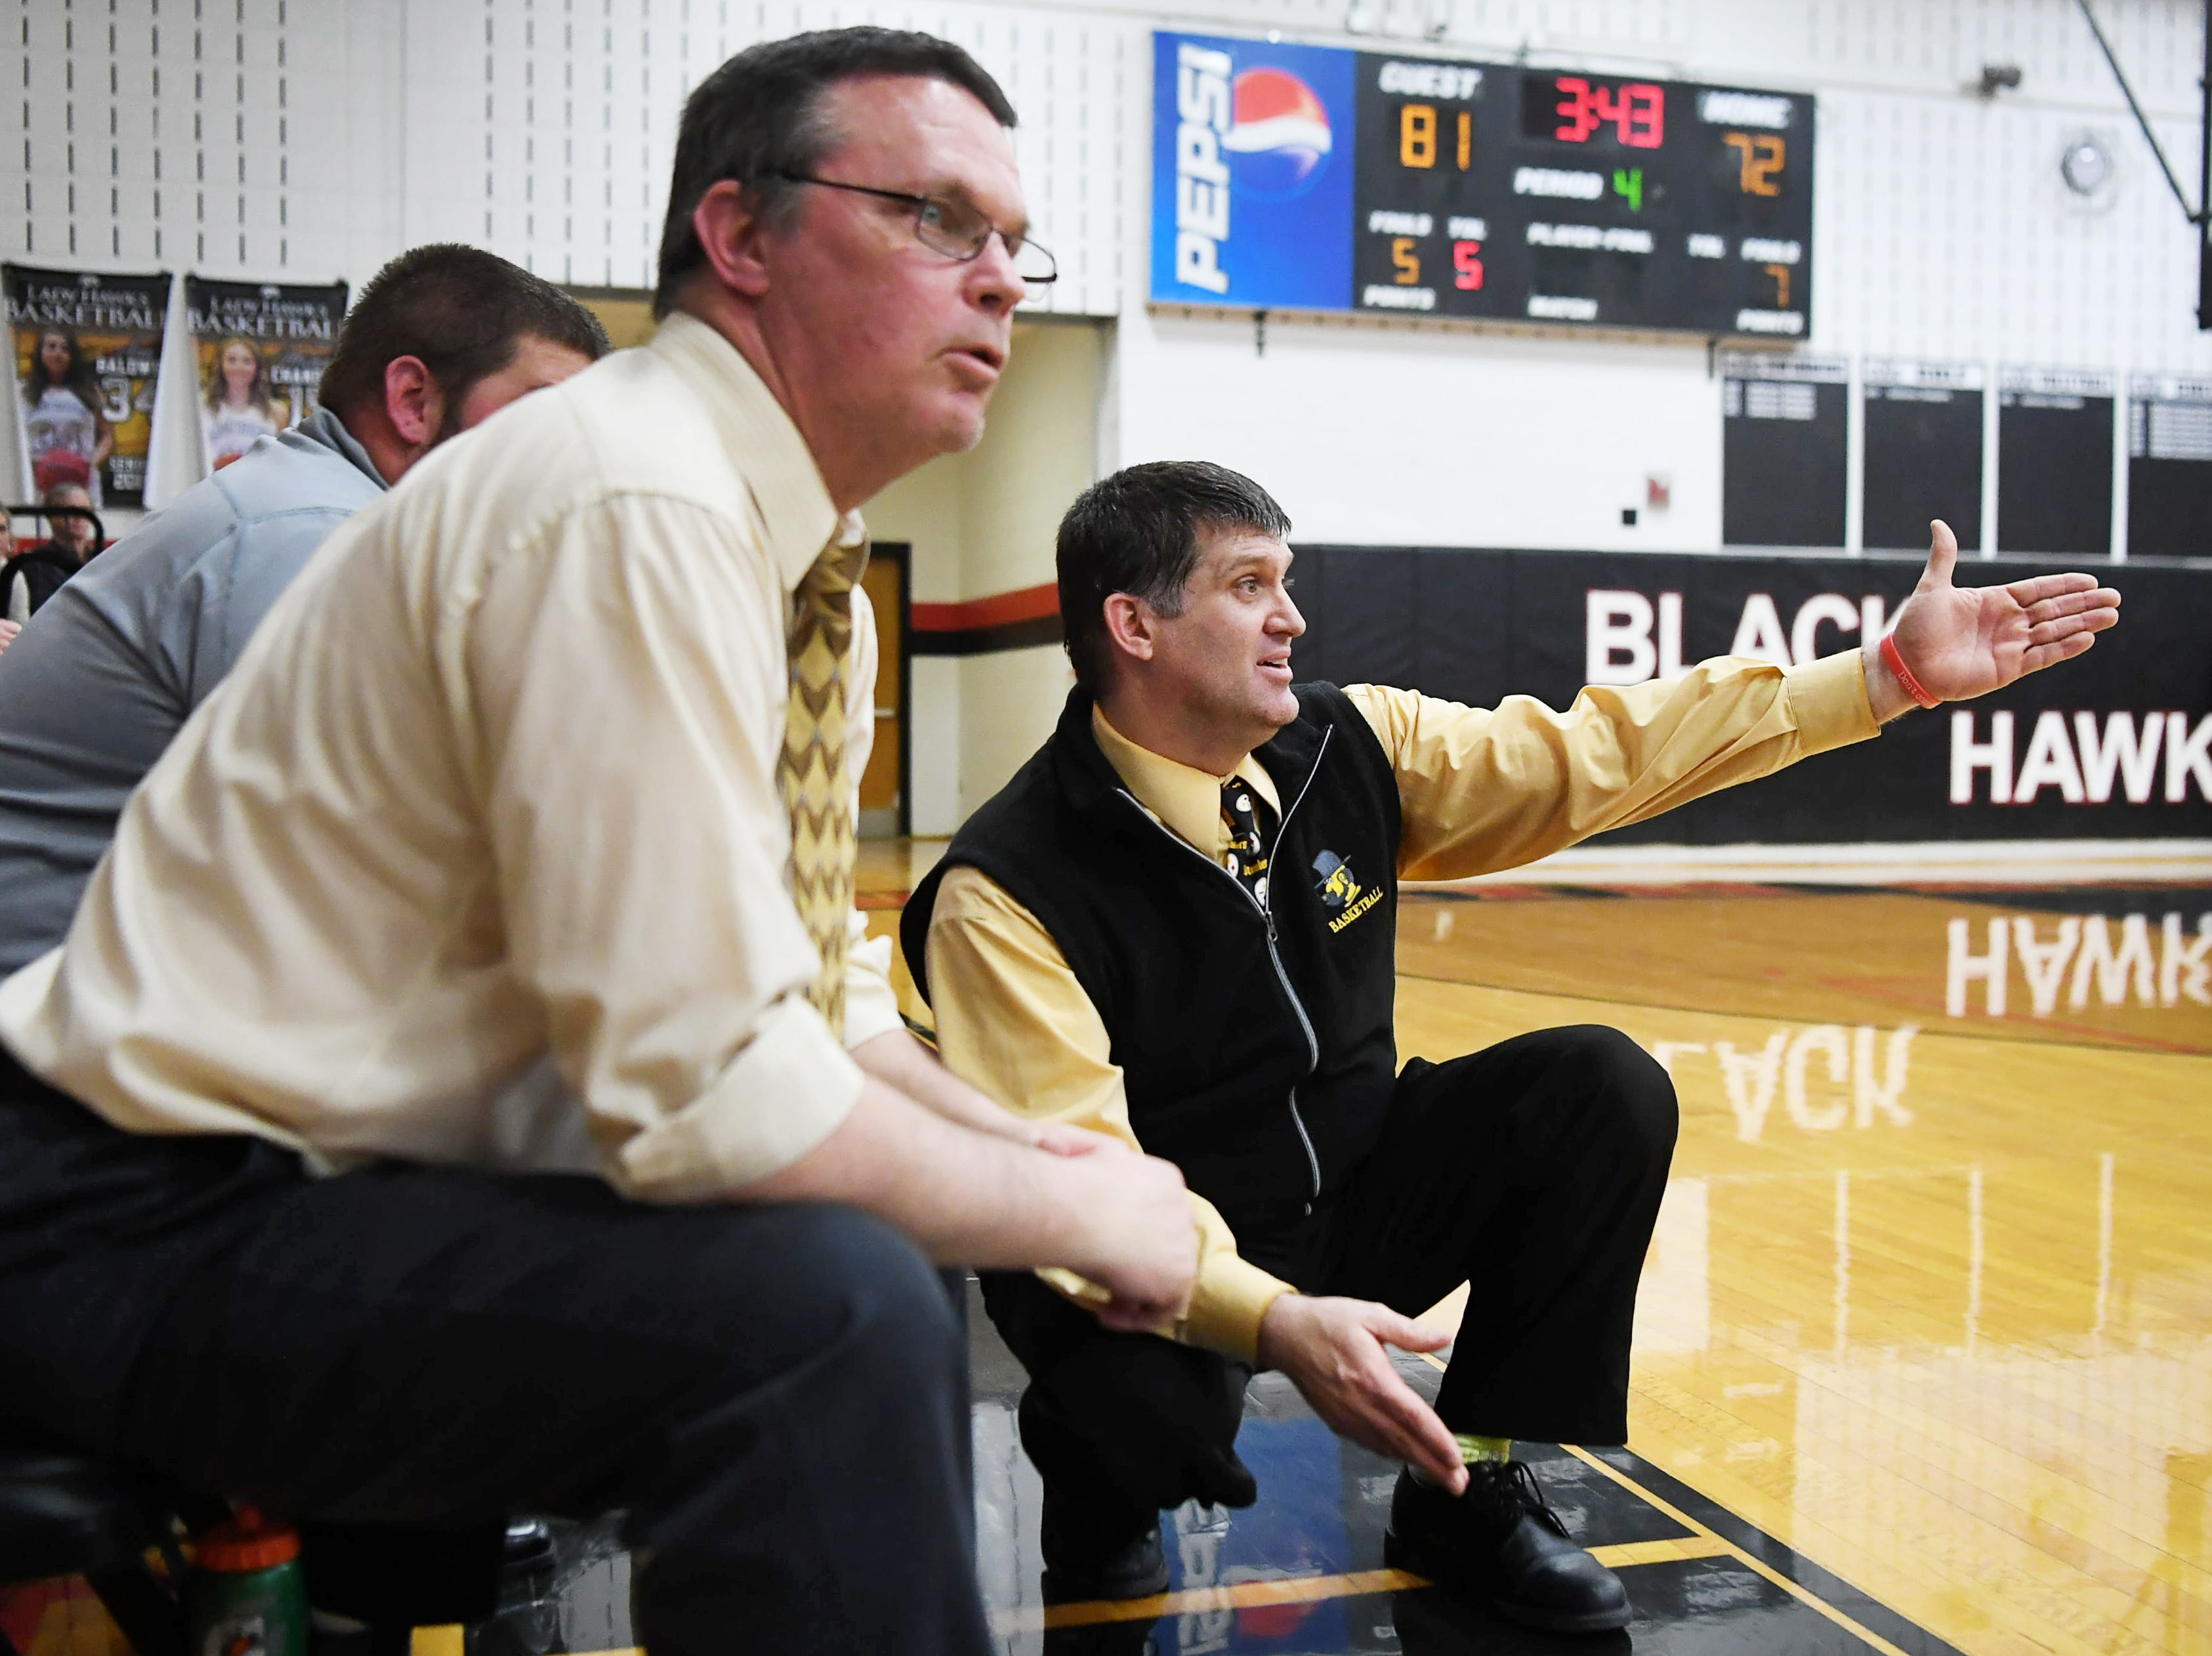 Tuscola's Nathan Messer reacts from the sidelines as he watches from the sidelines in the game against North Buncombe in Weaverville Tuesday, Feb. 5, 2019.